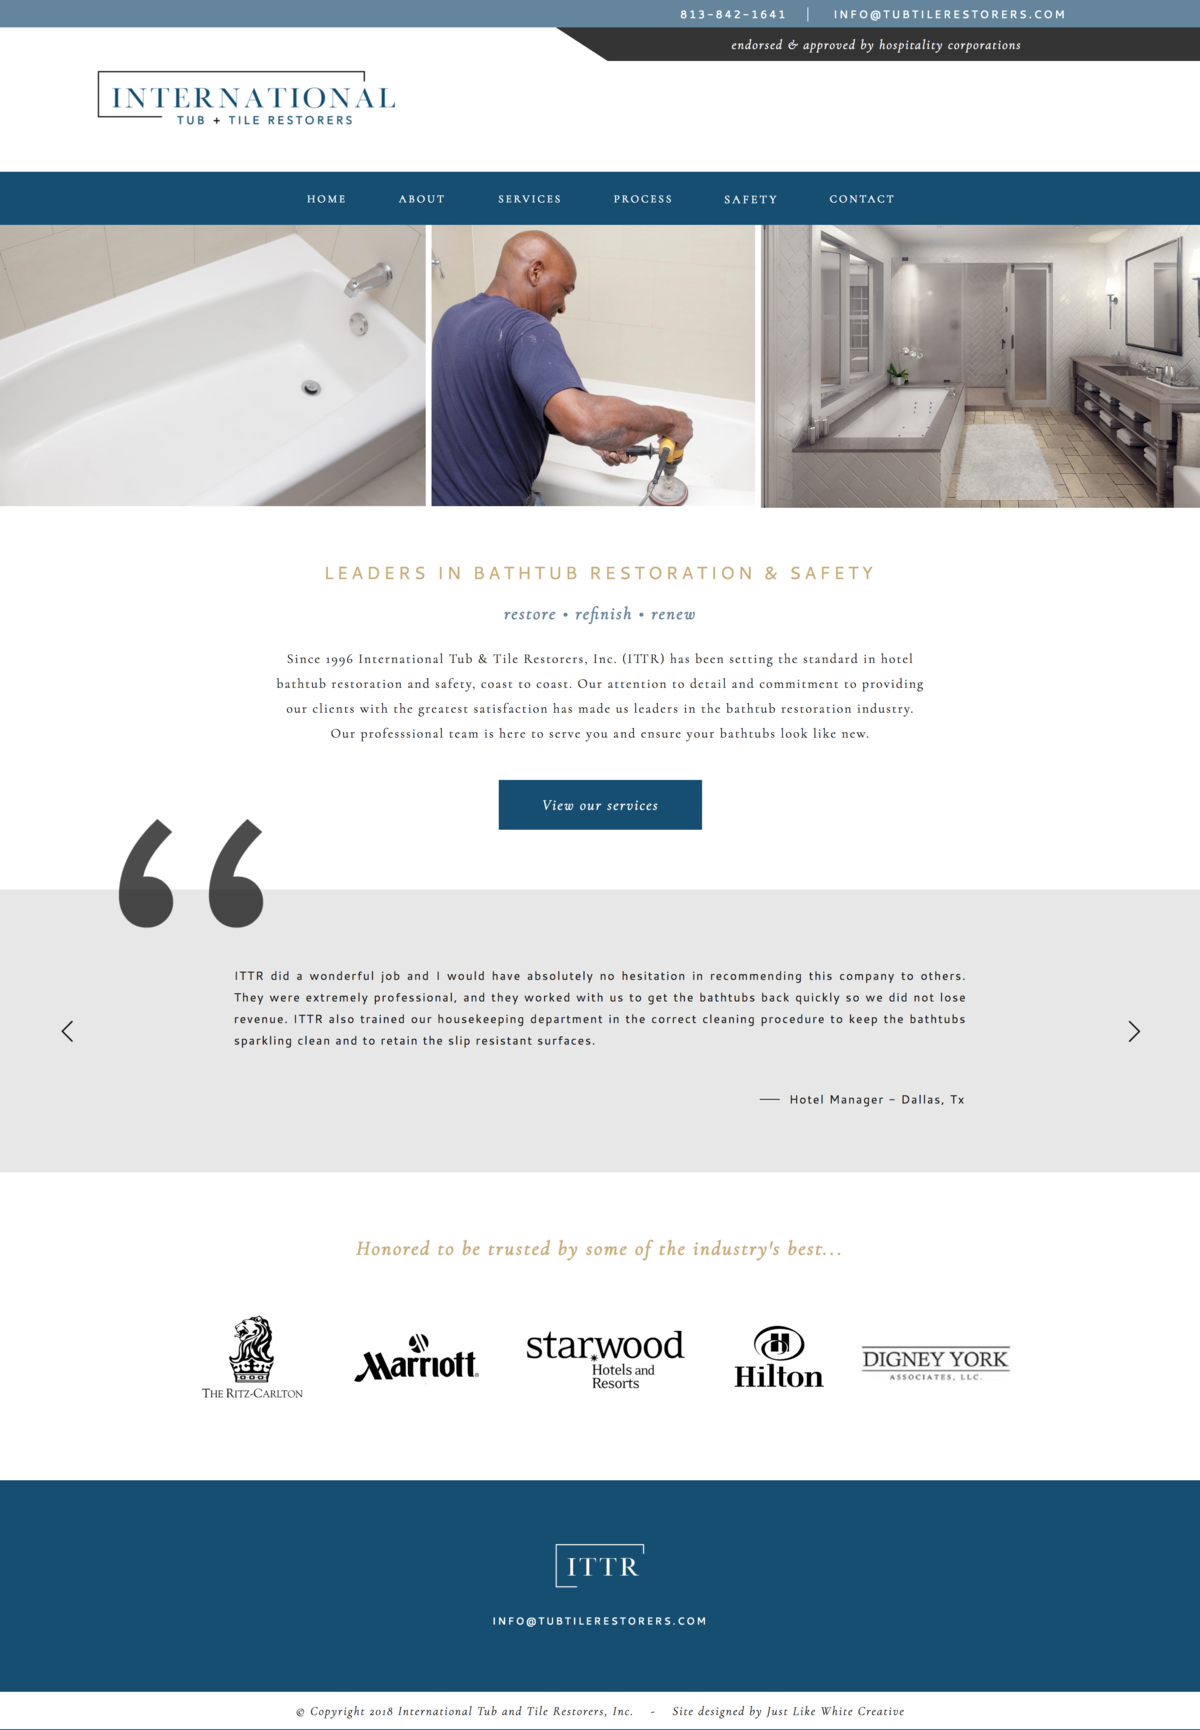 screencapture-international-tub-and-tile-restorers-inc-8-showit-site-2018-12-10-14_35_12